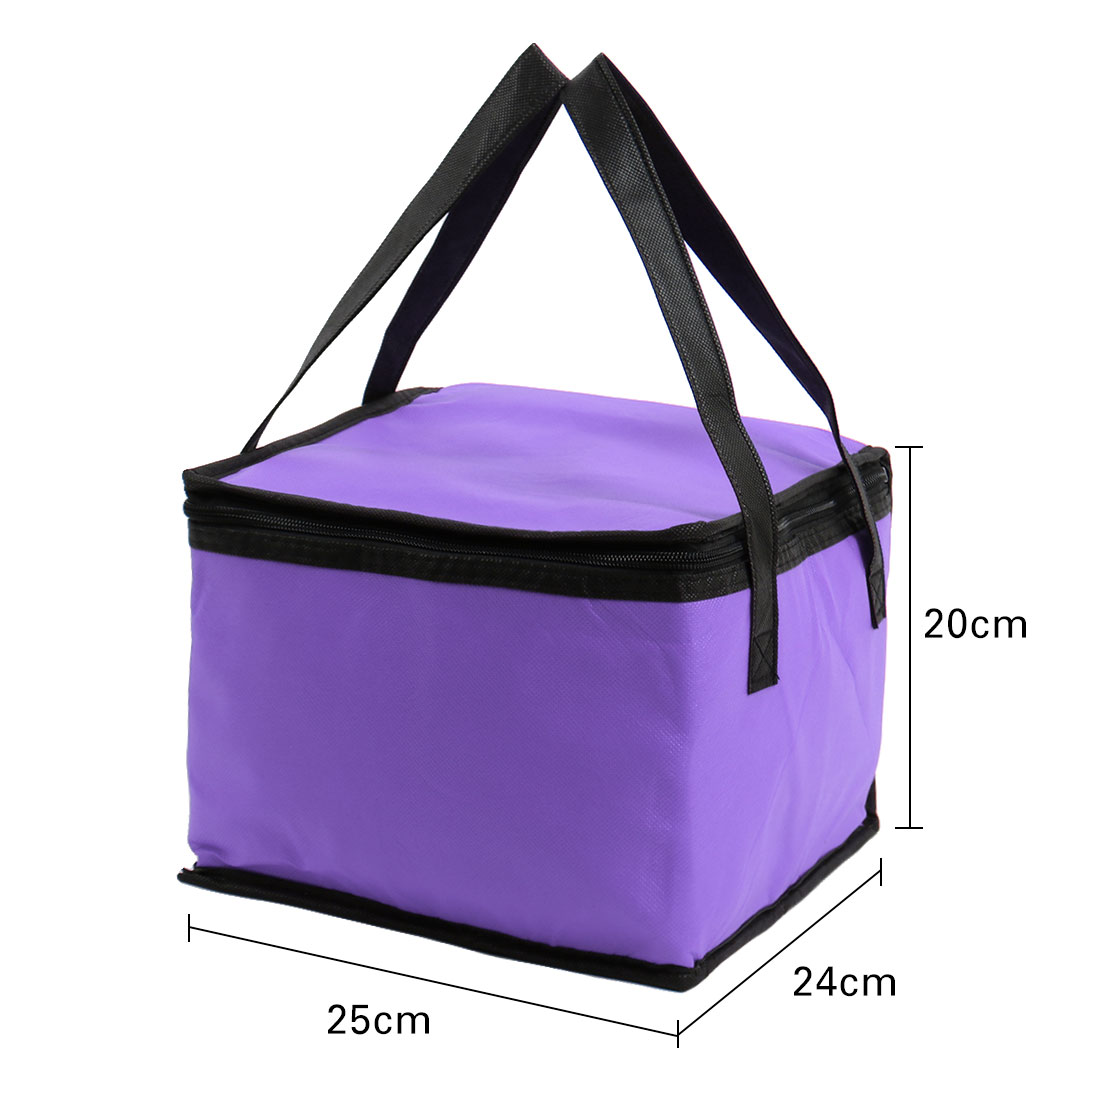 Unique Bargains Zipper Insulated Thermal Cooler Picnic Lunch Box Bag Carry Tote Storage Bag w Strap Coffee Color - image 1 de 6